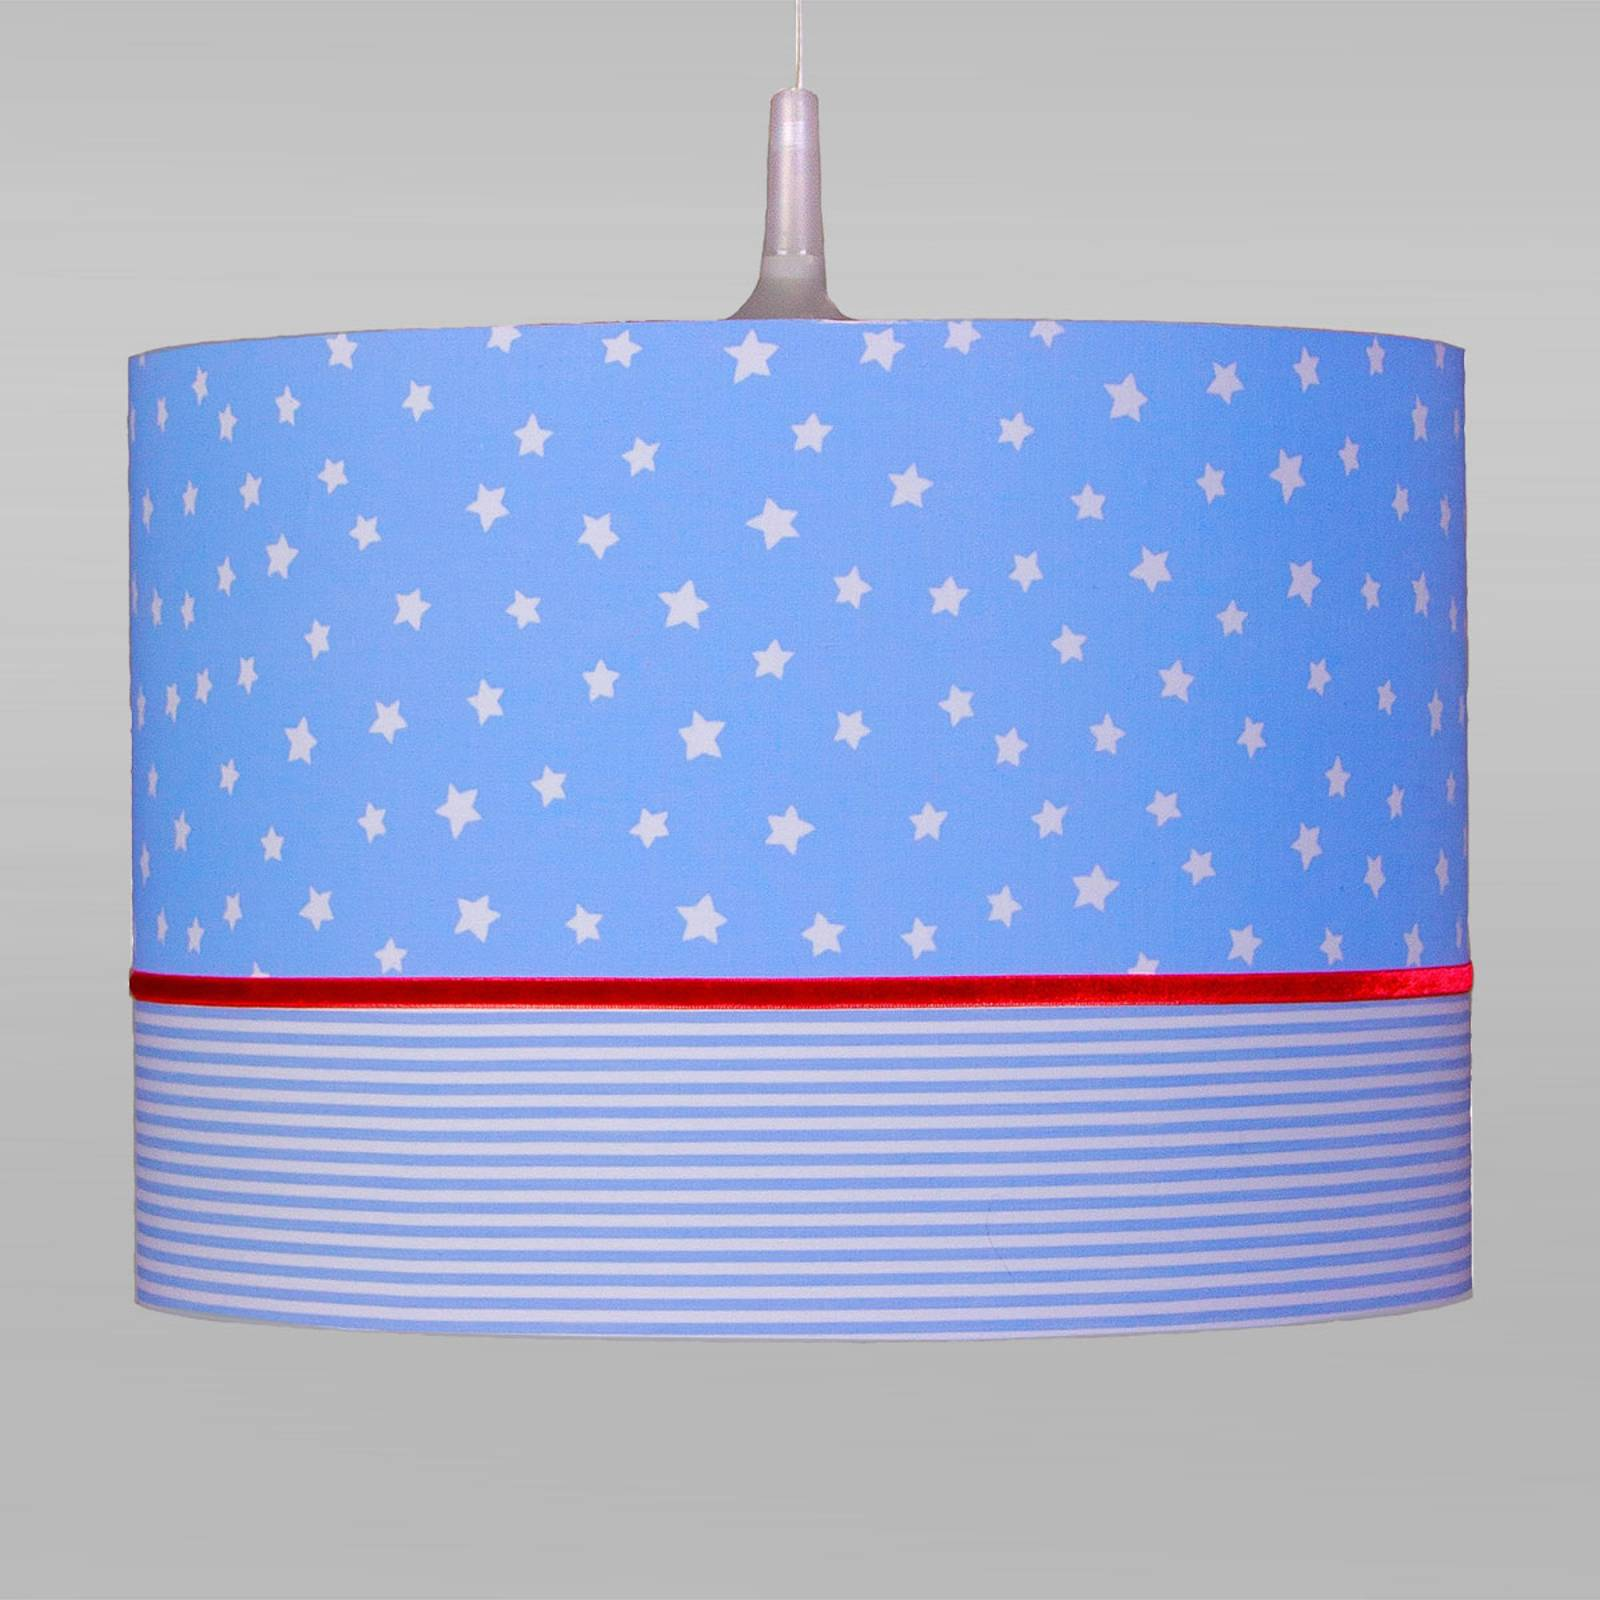 Lovely Little Stars children's hanging light from Waldi-Leuchten